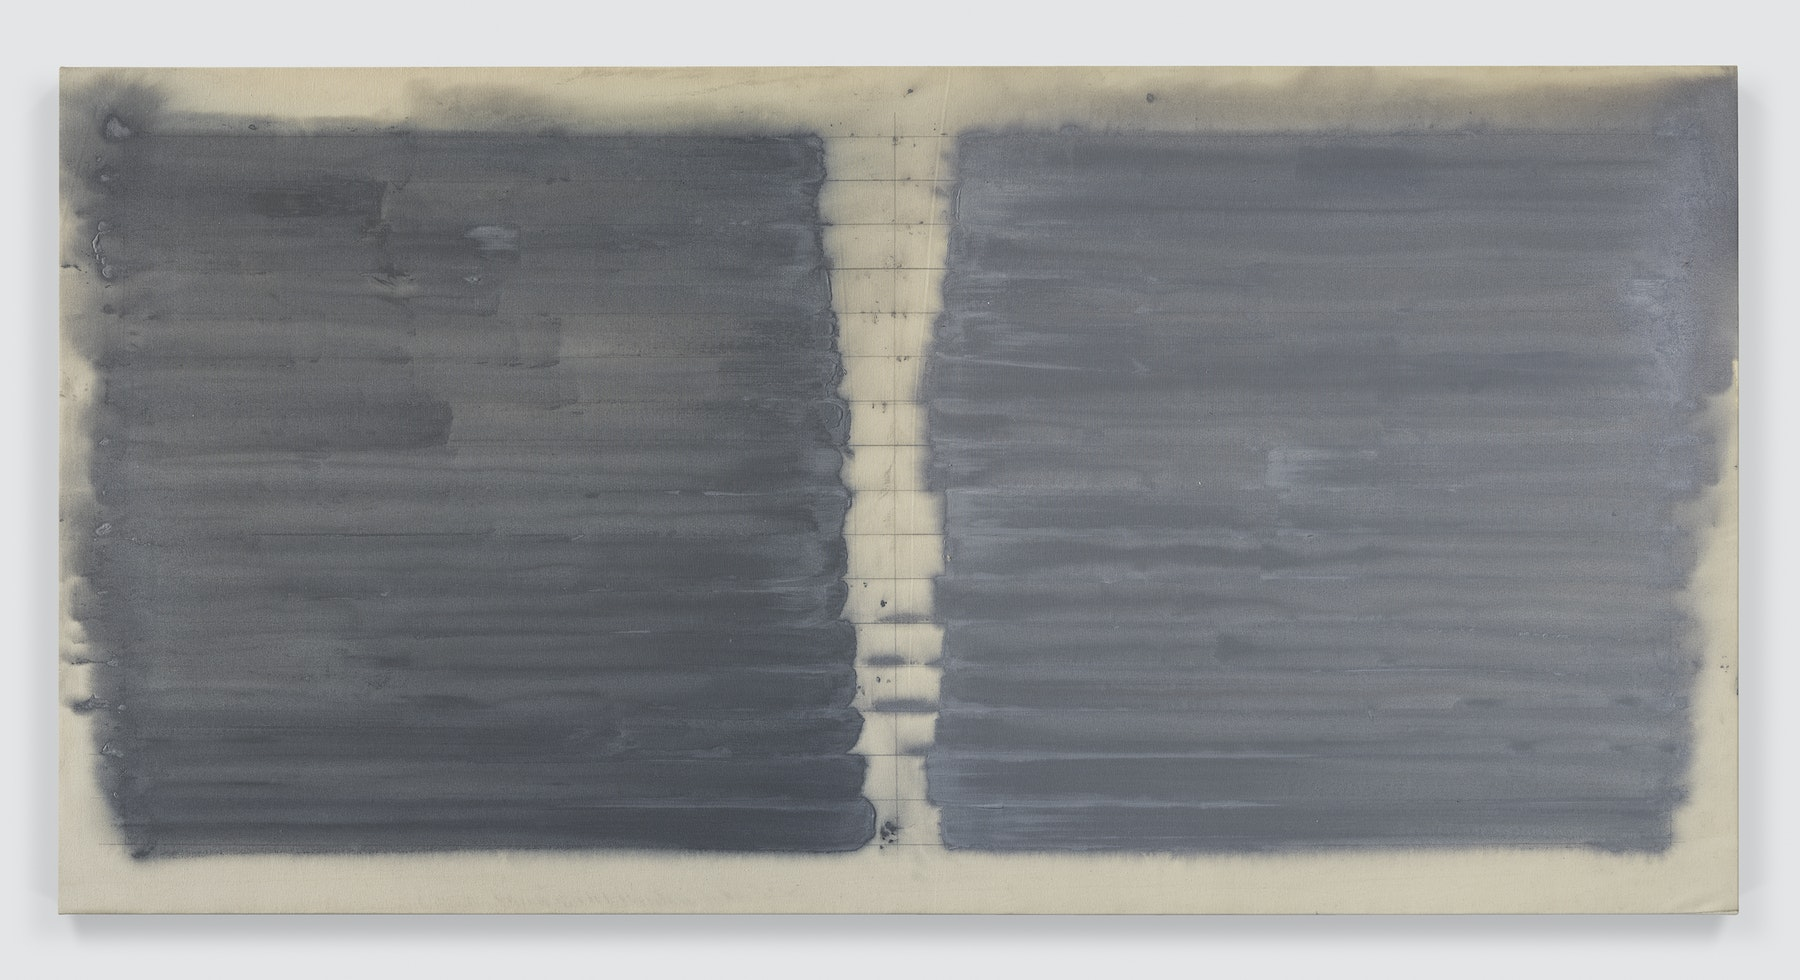 """Louise Fishman """"UNTITLED,"""" 1971 Acrylic on canvas 48 x 94"""" [HxW] (121.92 x 238.76 cm) Inventory #FIS125 Courtesy of the artist and Vielmetter Los Angeles Photo credit: Genevieve Hanson"""